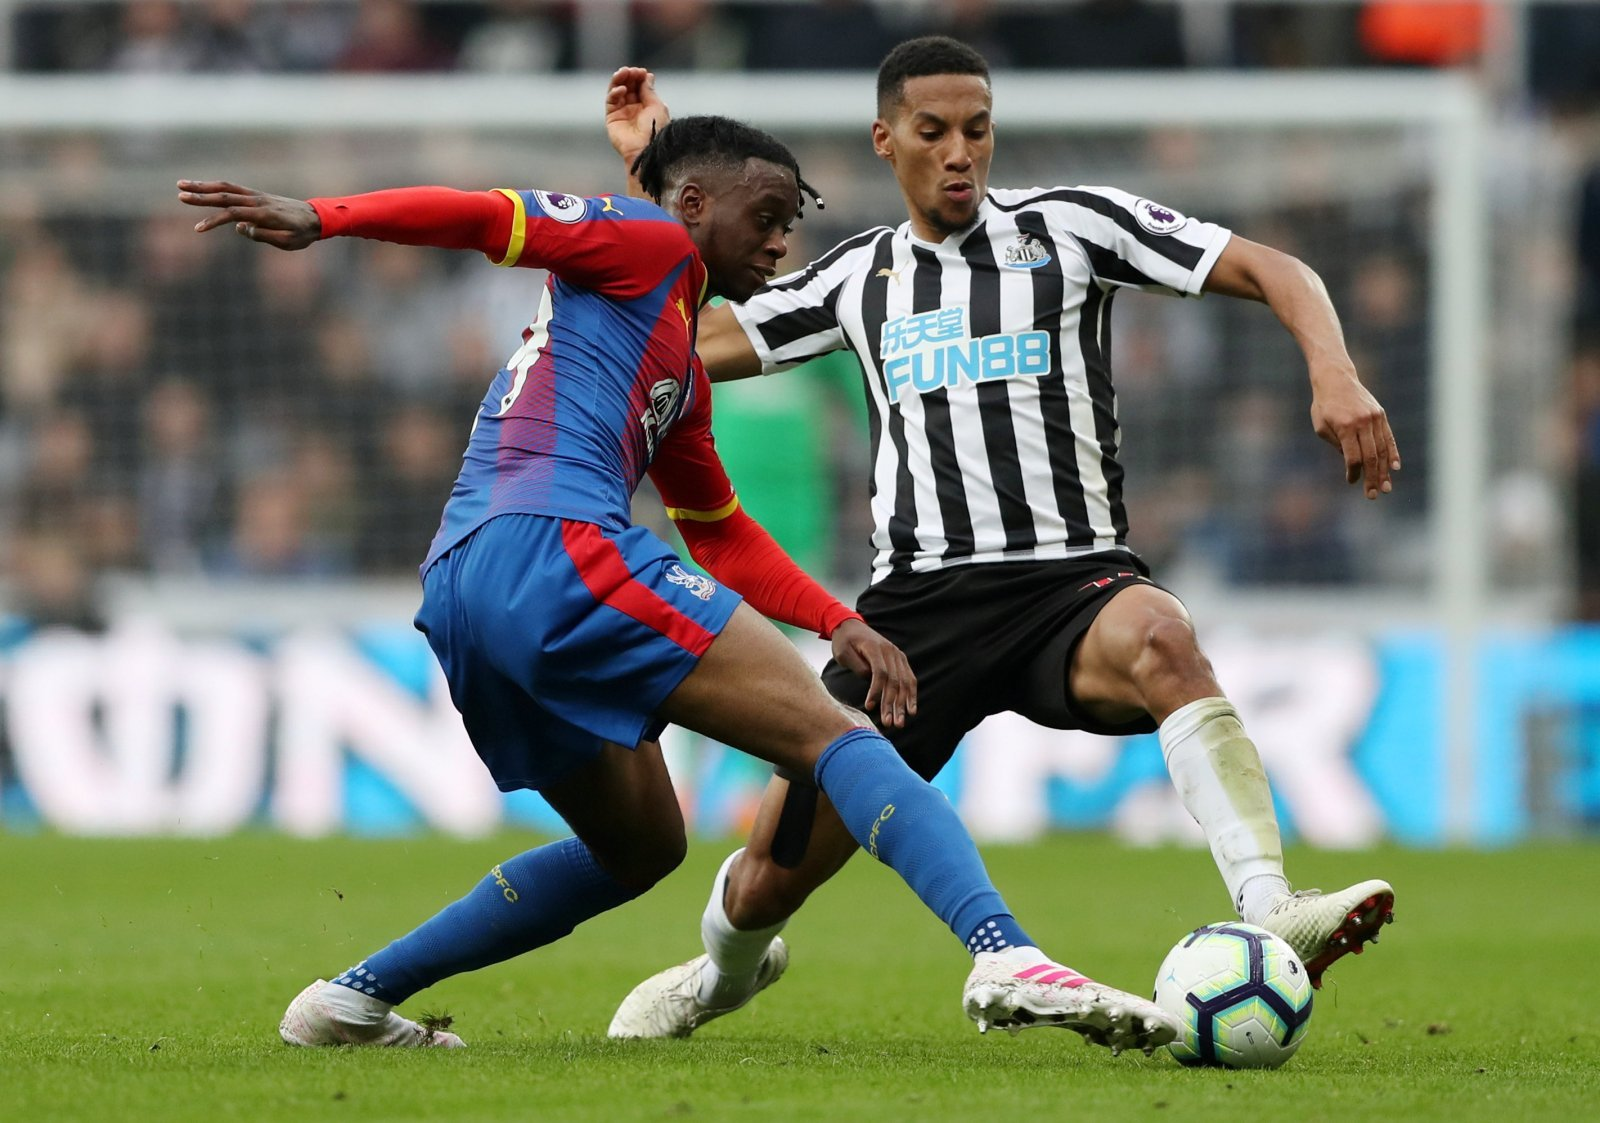 Potential consequences: Newcastle United letting Isaac Hayden leave